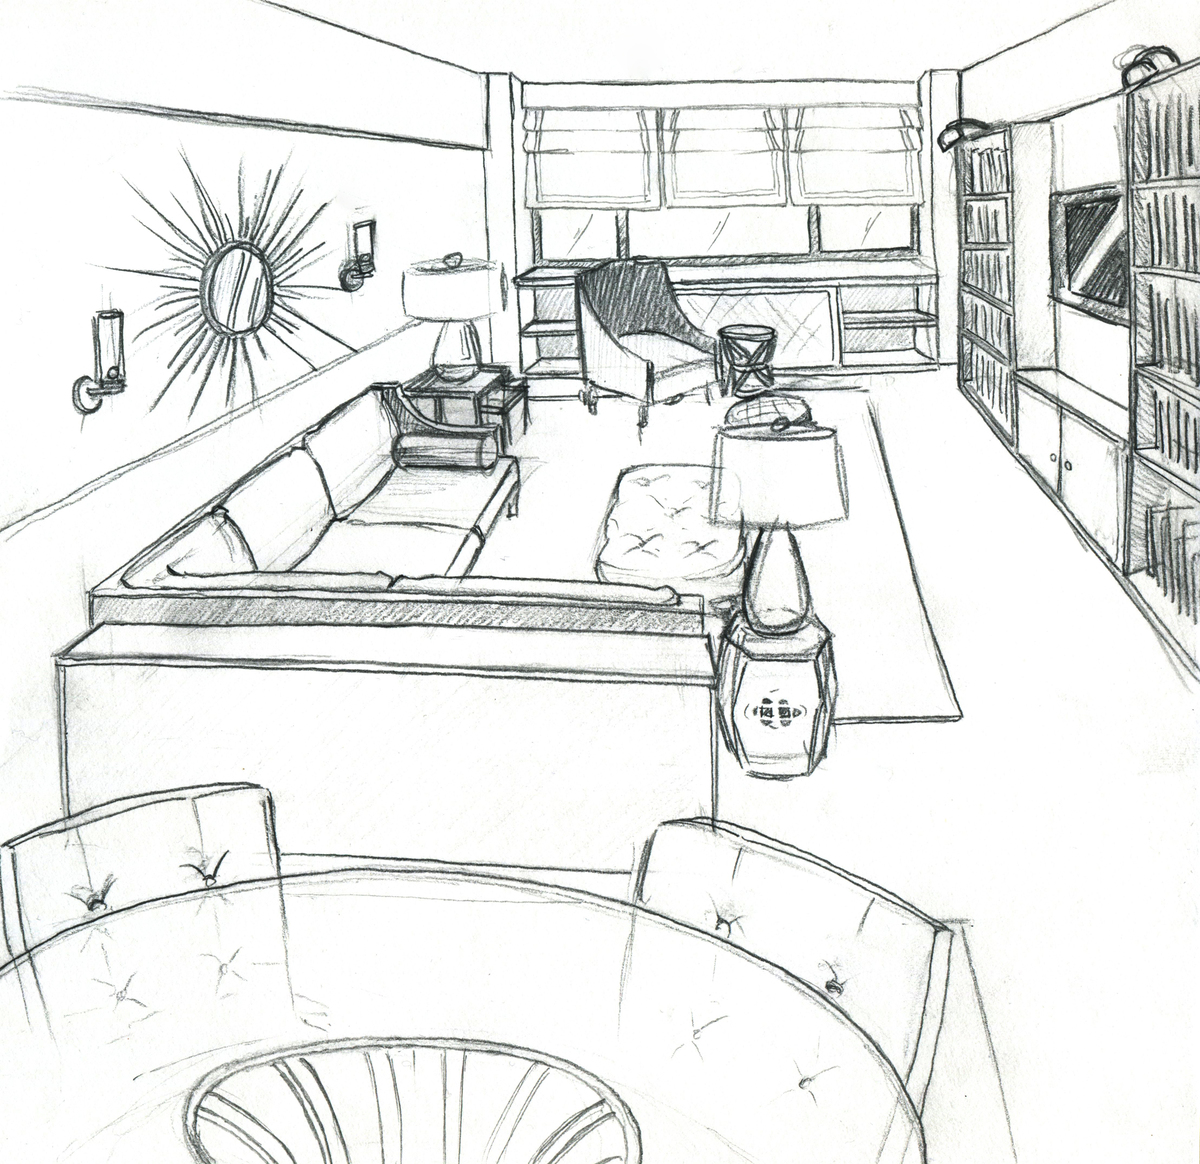 Upper east side living room zach mitchell archinect for Living room interior design sketch